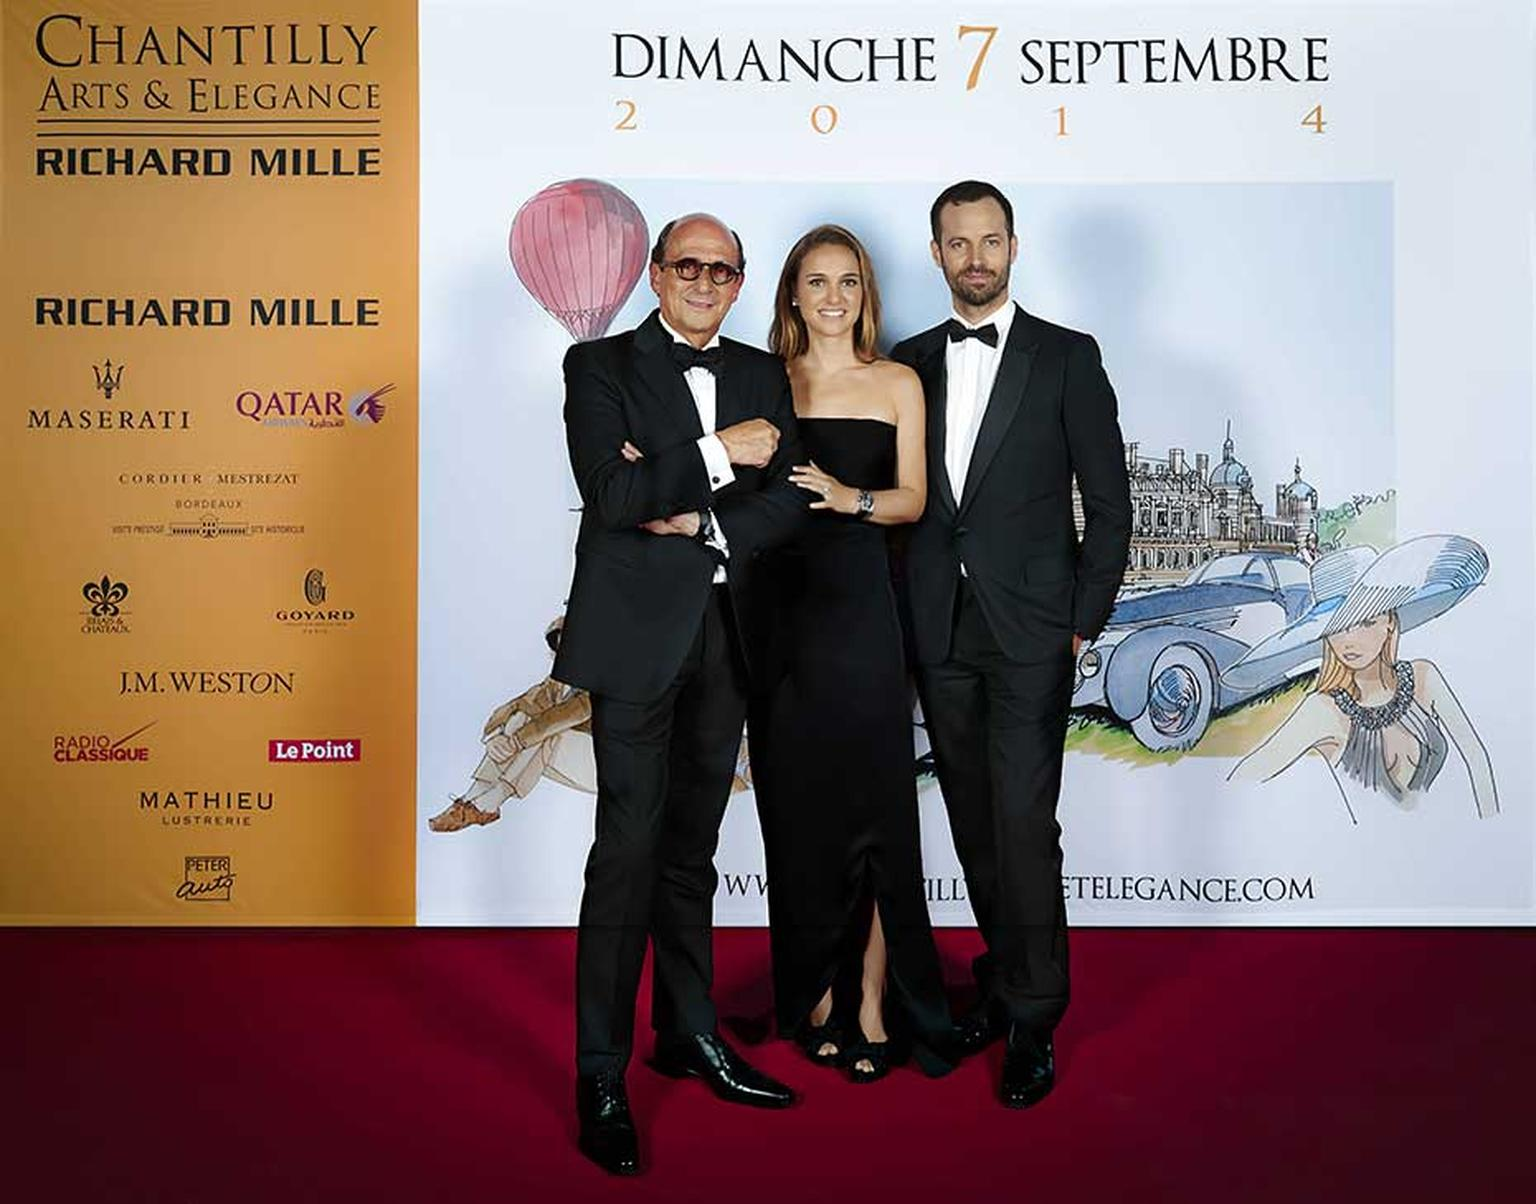 Richard Mille, left, stands beside Natalie Portman - friend of Richard Mille - and her husband, Benjamin Millepied, at a gala dinner held during the inaugural Chantilly Arts & Elegance event this September, sponsored by Richard Mille.